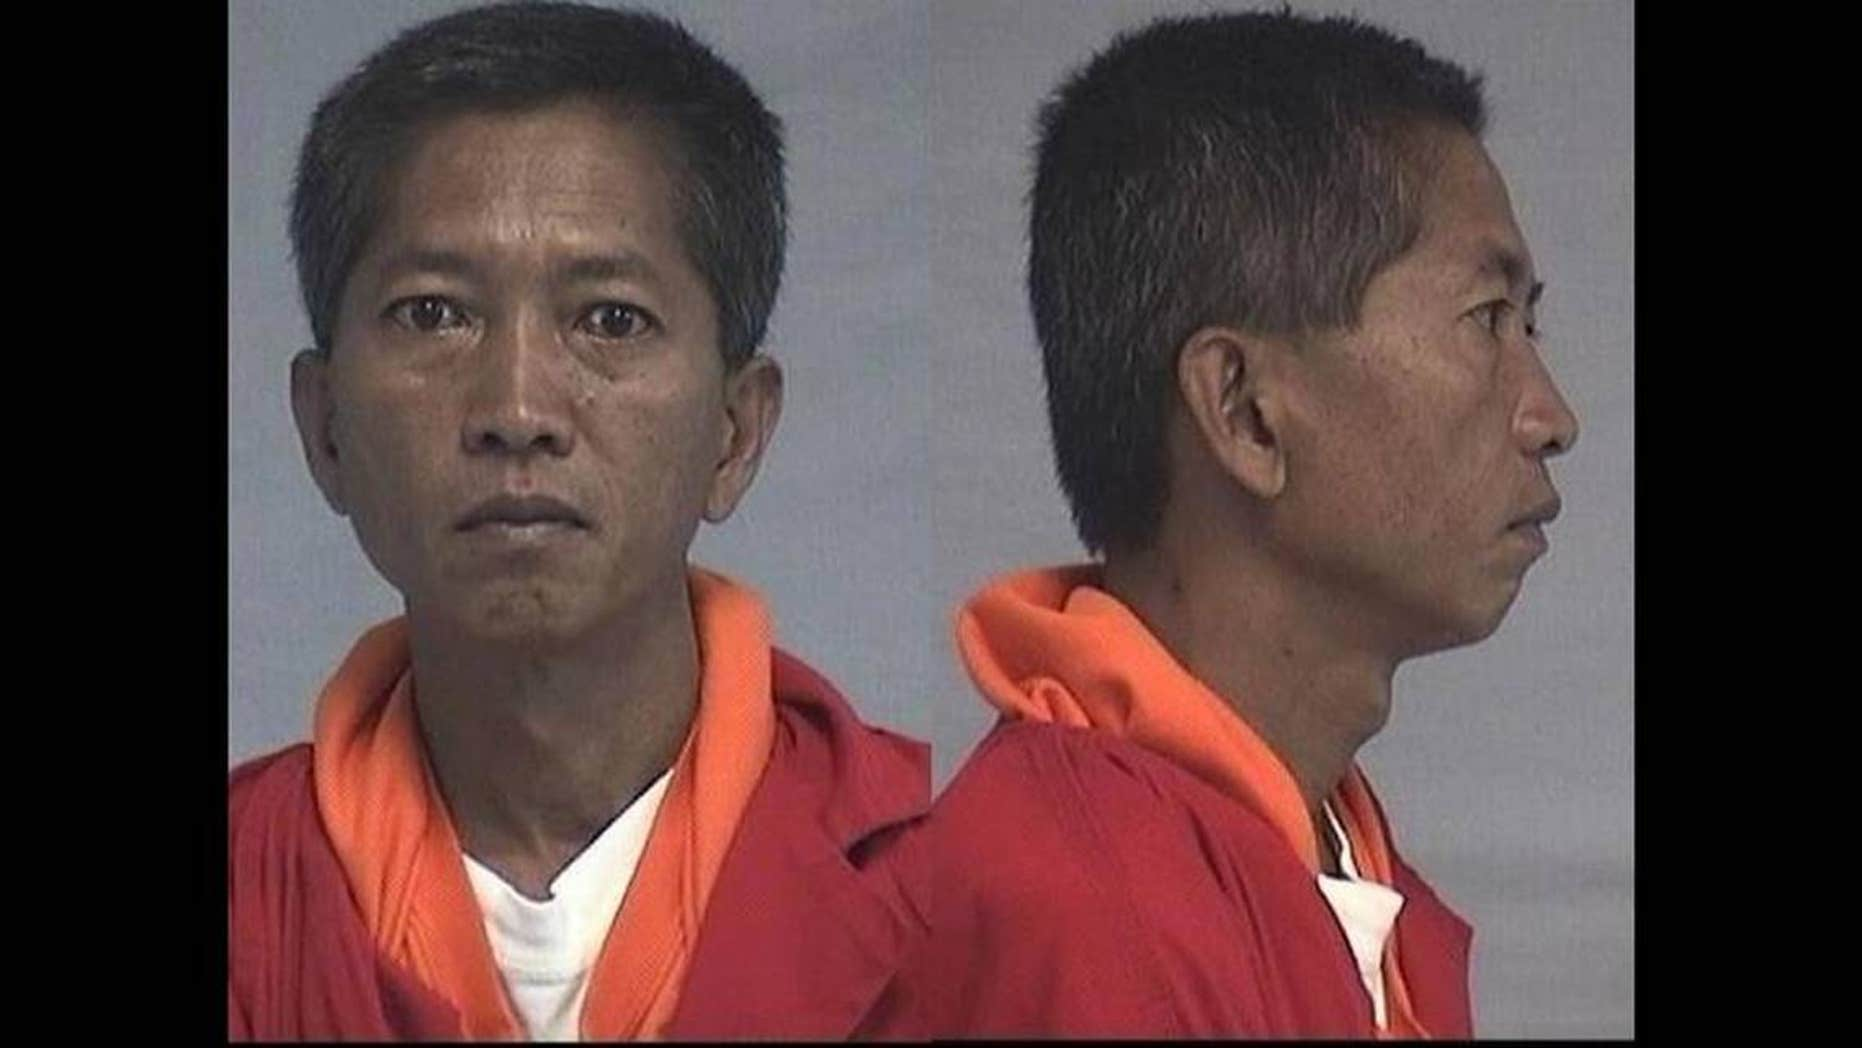 Fernandina Beach resident Phu Trieu Tran, 45, was arrested Wednesday for allegedly putting live animals into a trash compactor.